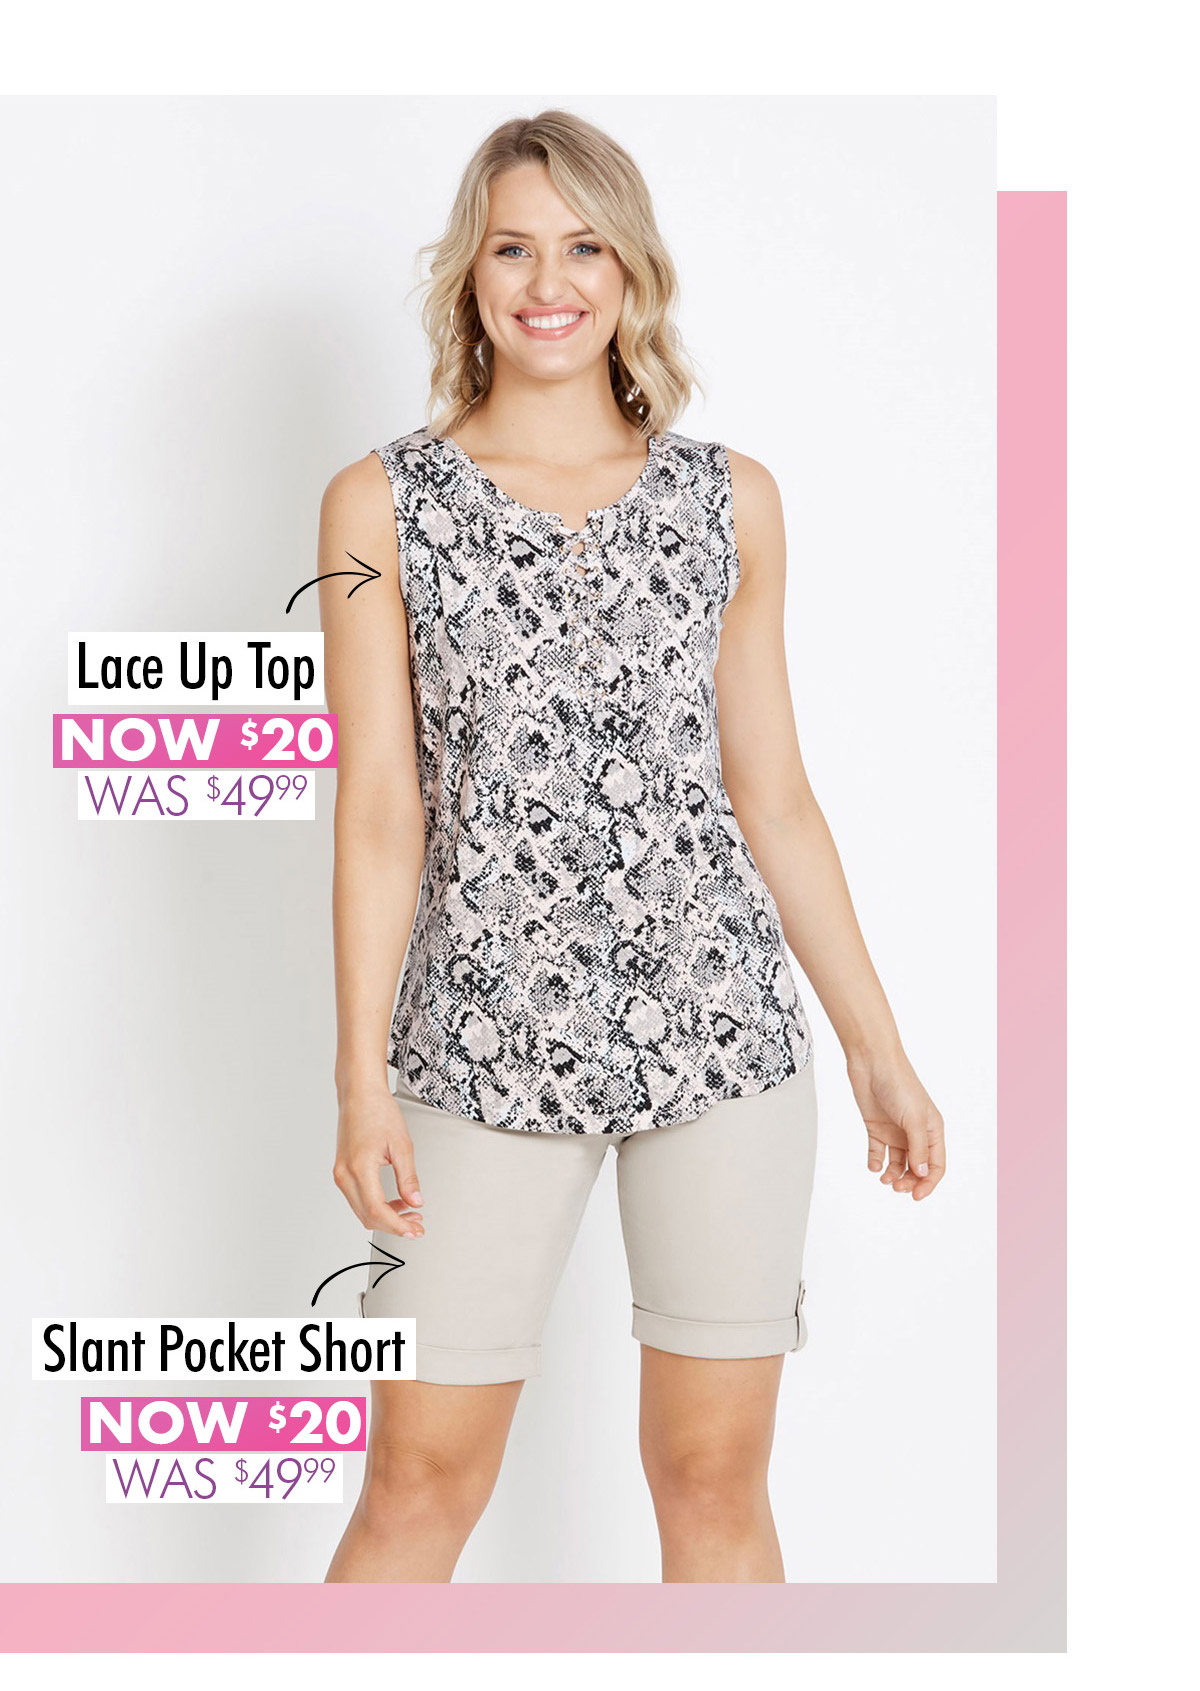 The perfect summer pieces only $20*